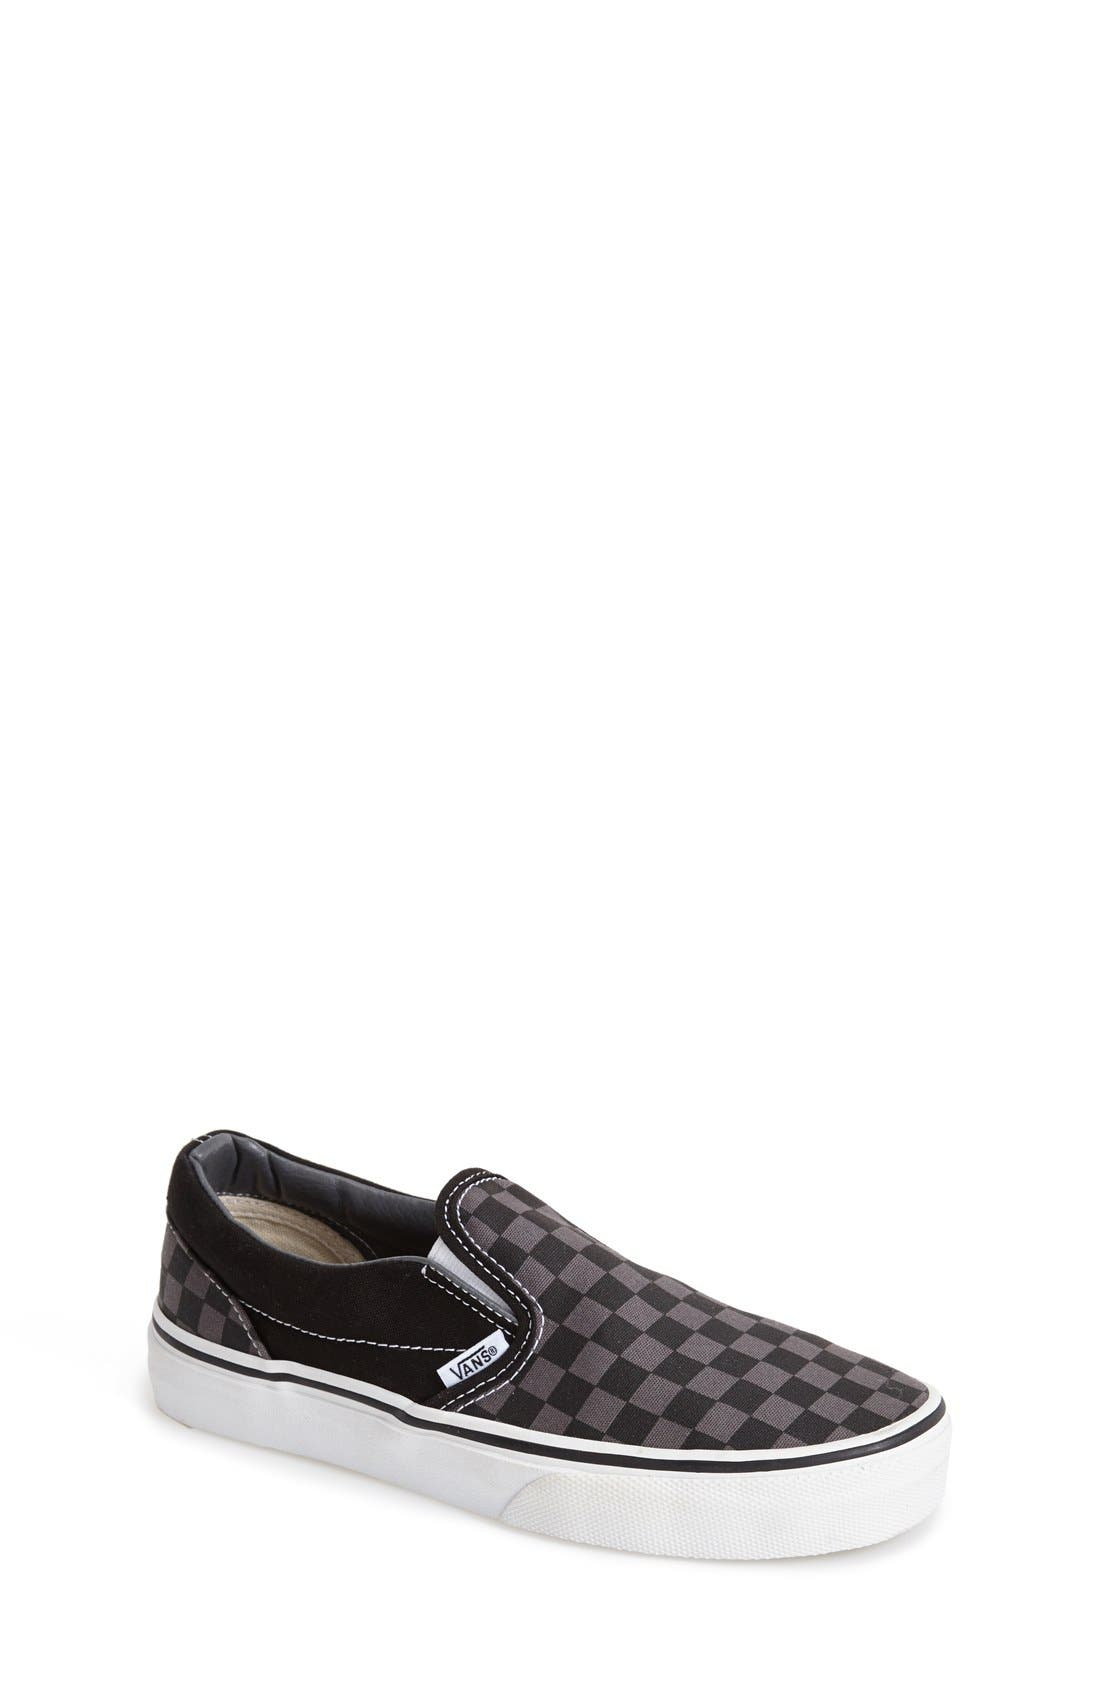 VANS, Classic Checker Slip-On, Main thumbnail 1, color, CHECKERBOARD/ BLACK/ PEWTER